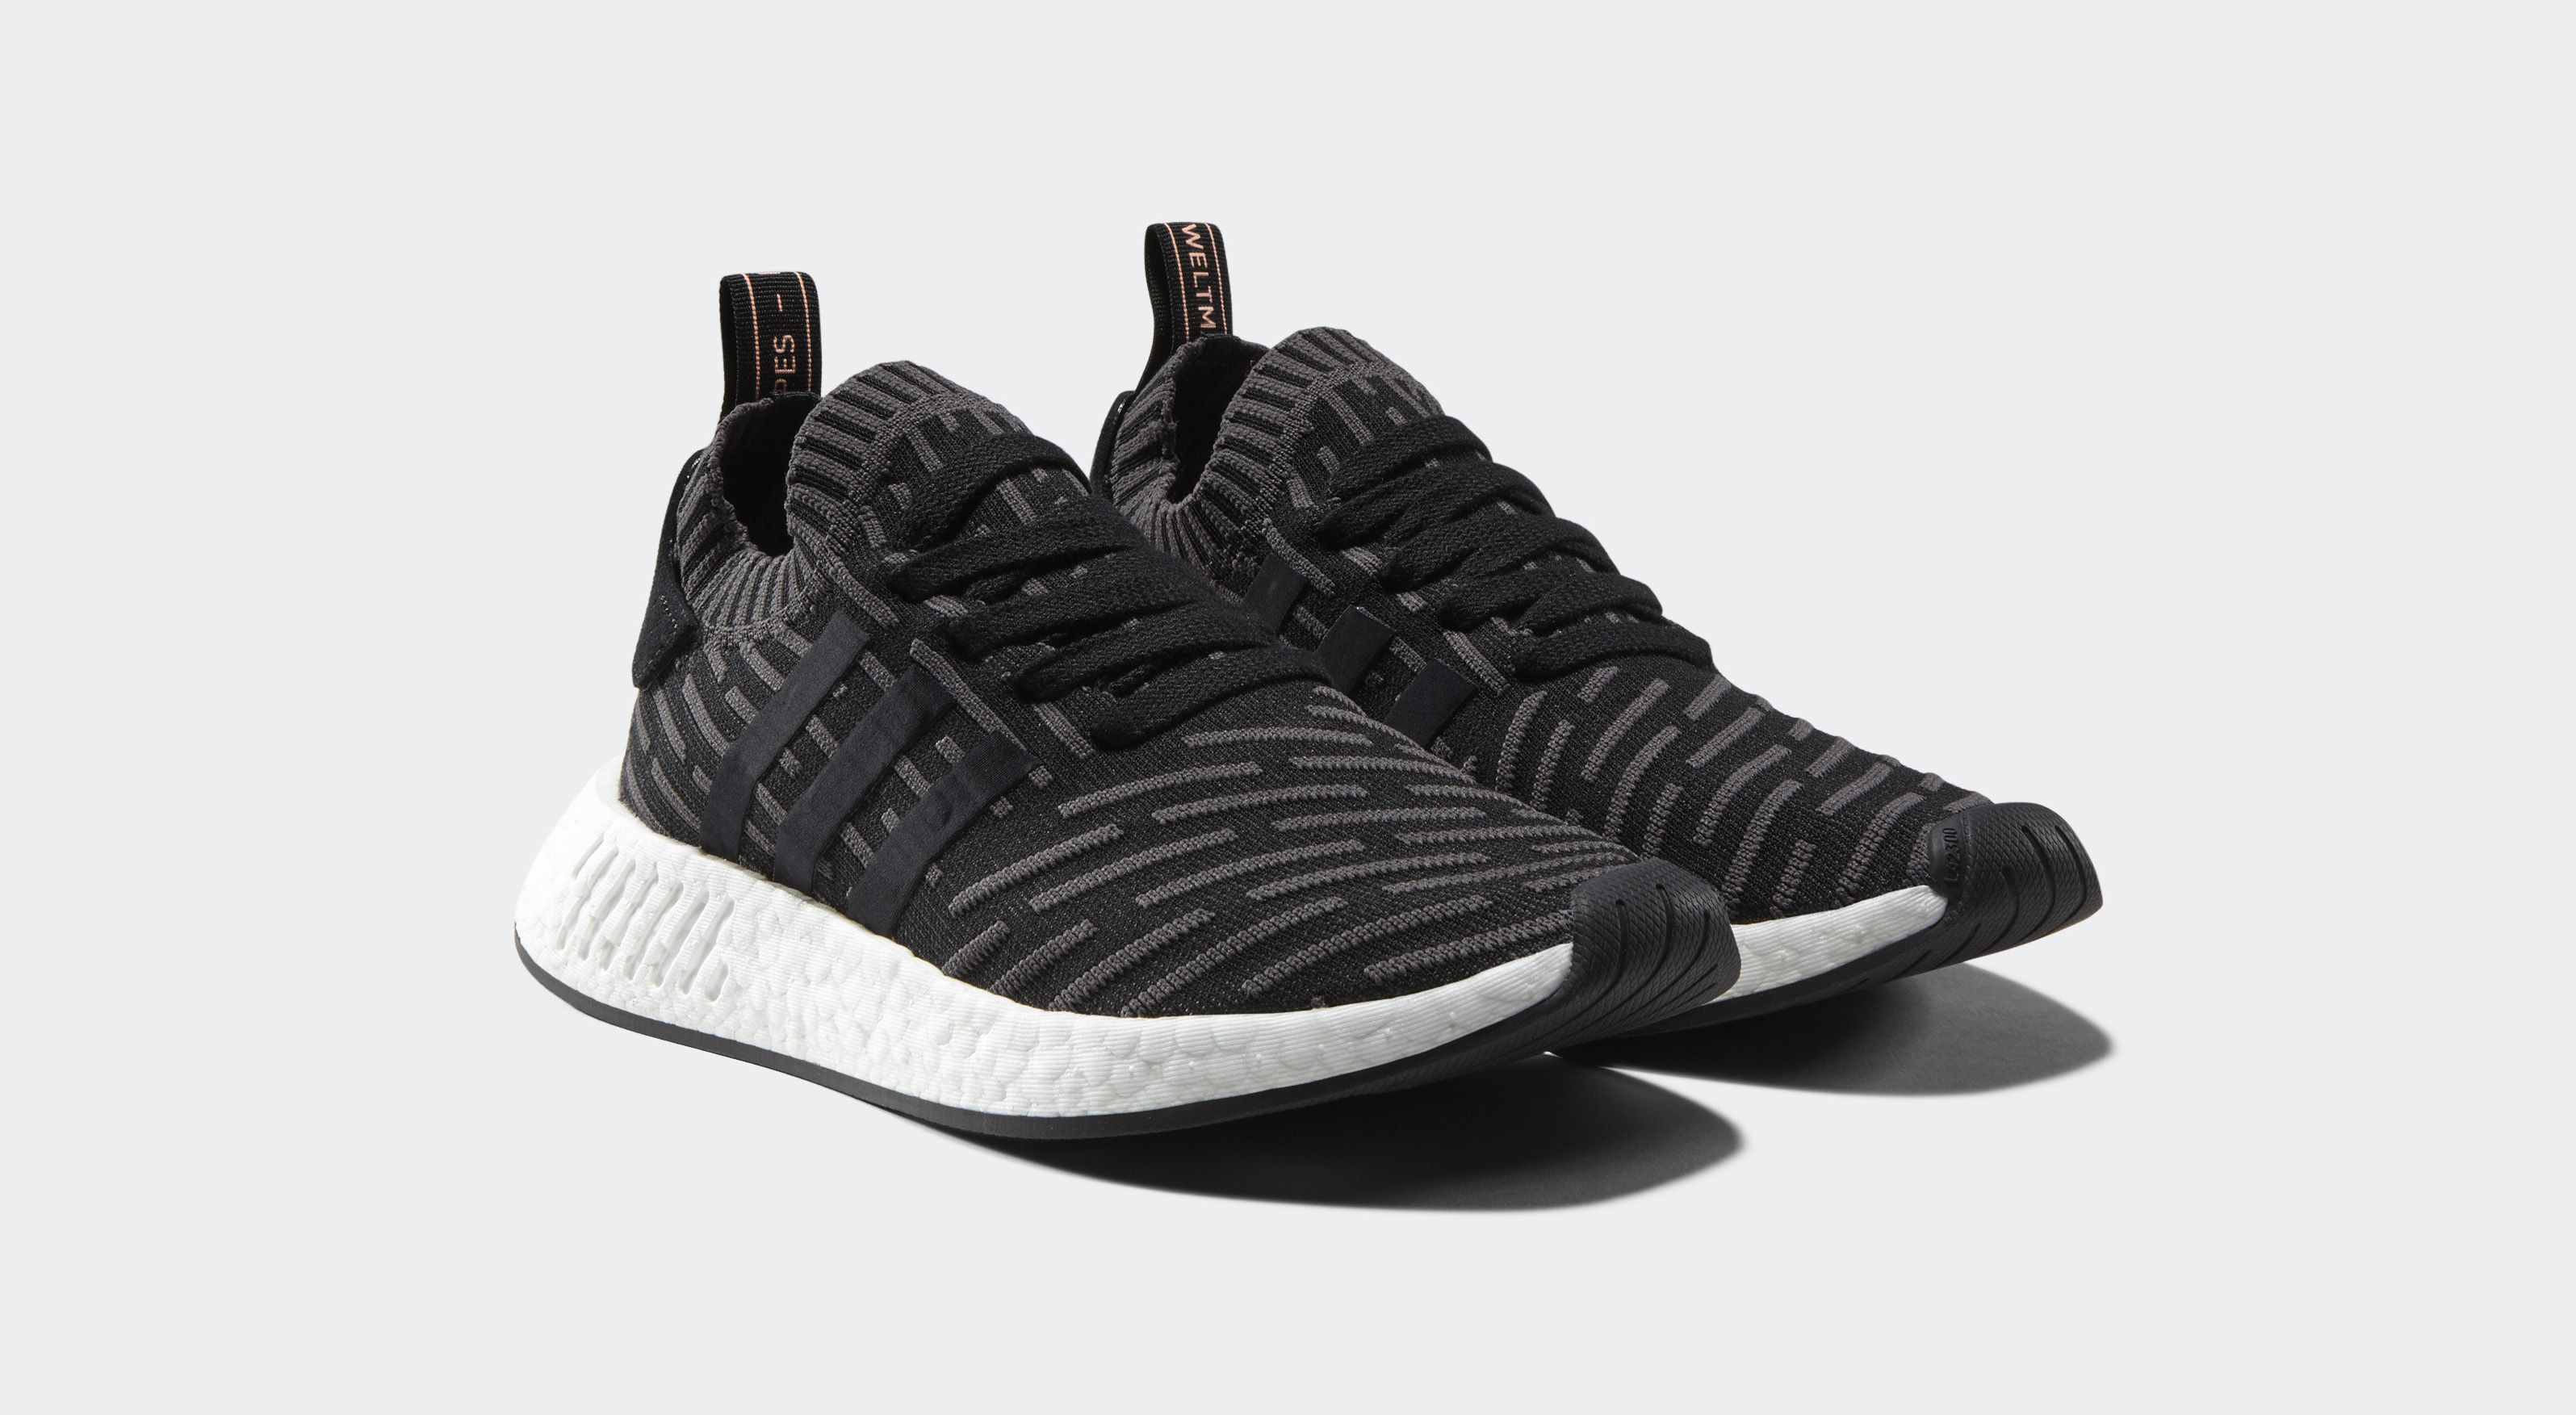 Introducing the adidas NMD R 2 Sneaker  adidas Adidas has announced the  release of the adidas NMD R 2 sneaker e622ea3f5